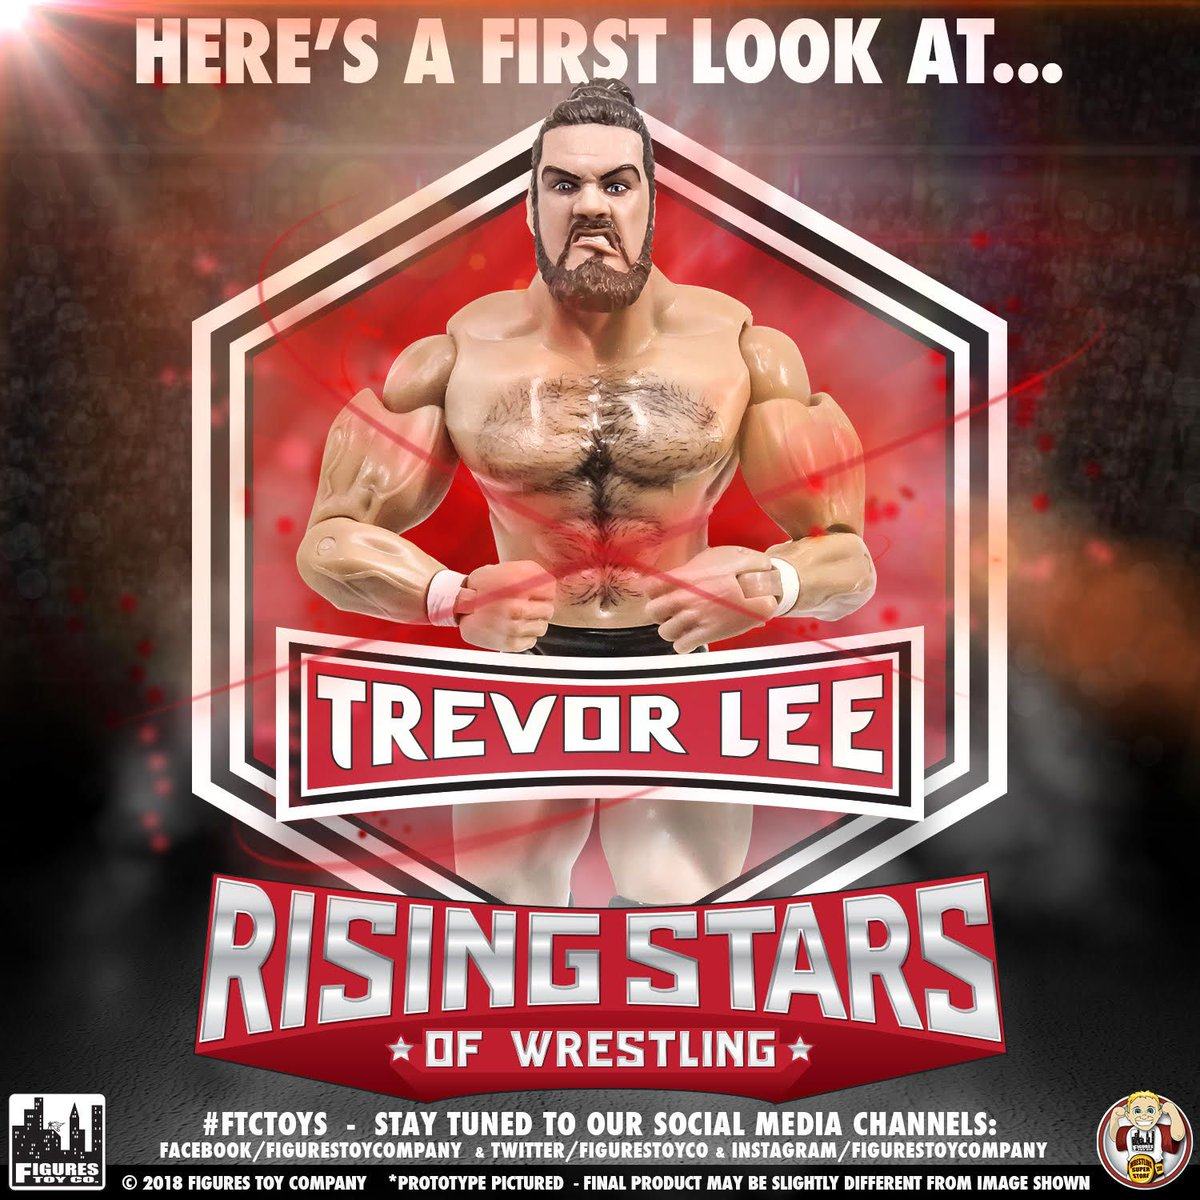 Later this year, were unleashing one of the hottest high fliers in wrestling onto your action figures! Prepare for the arrival of the first ever @TLee910 figure! @IMPACTWRESTLING @OfficialPWG #toyspotting #figlife